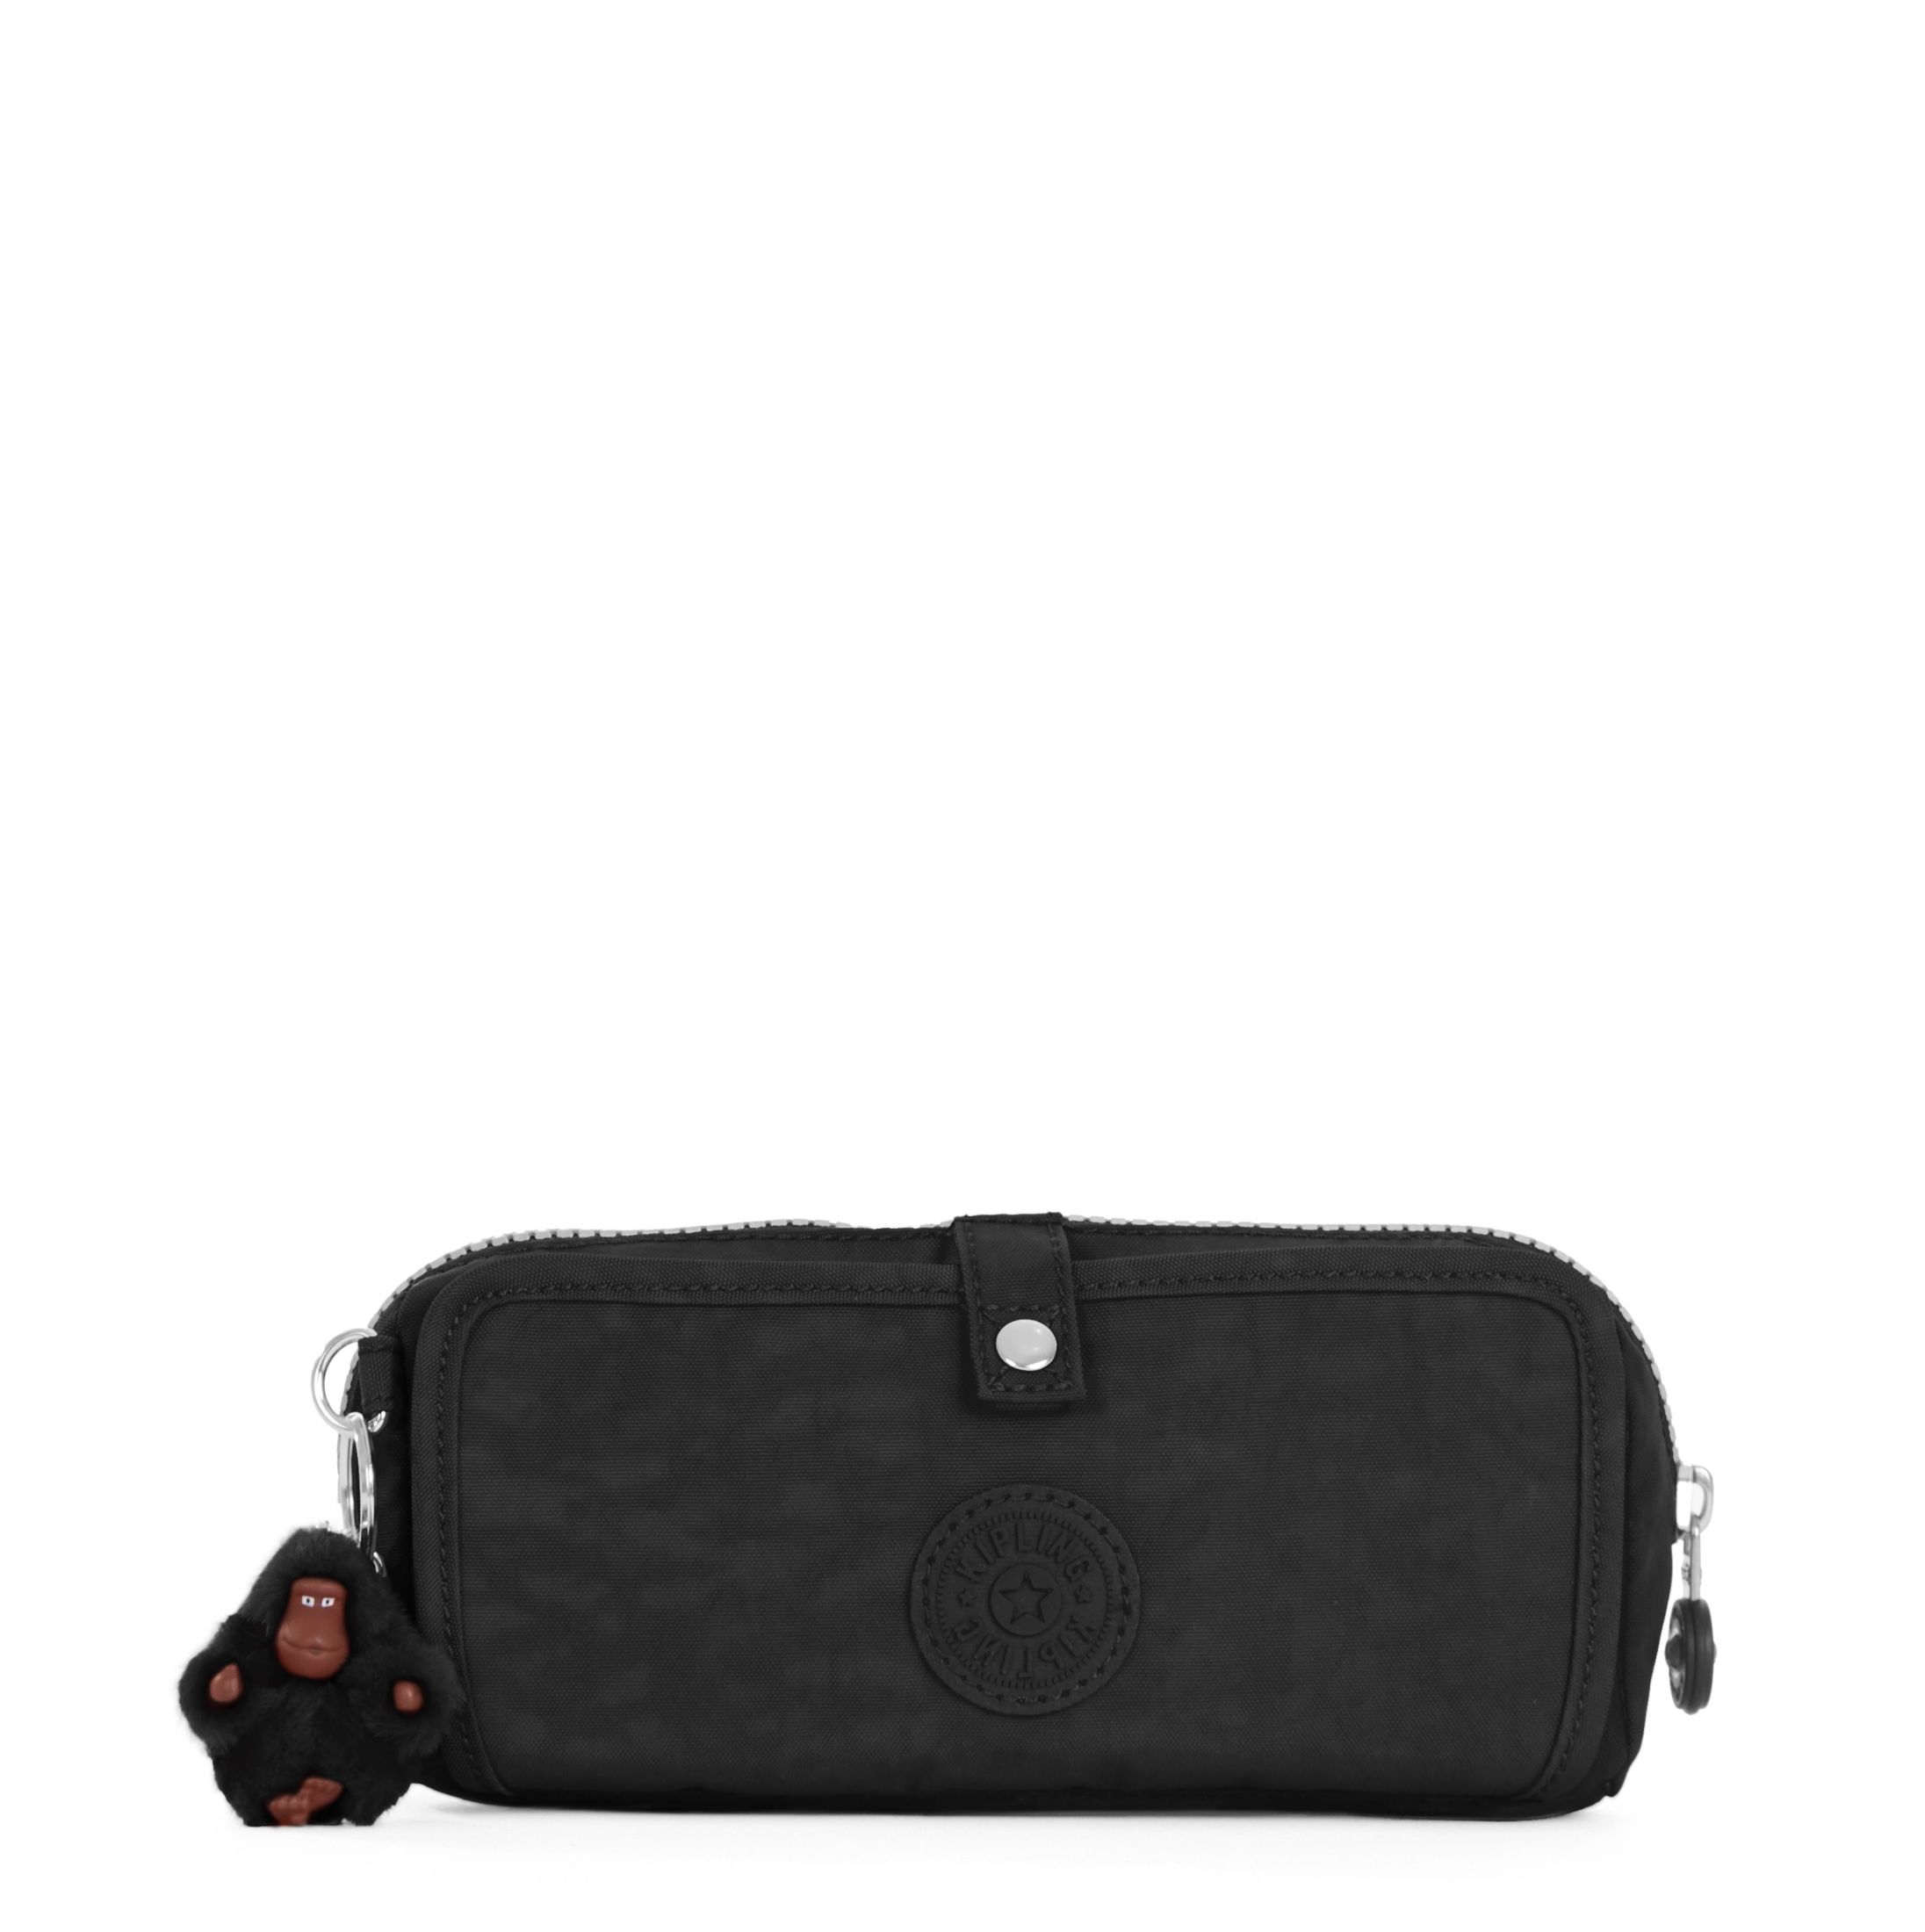 """This zip-pouch is primed to stow all your small essentials and hold them neatly inside your backpack or handbag, but our favorite part is the roll-around flap with a few handy pen loops on the inside. #genius Dimensions: 7.75"""" x 3.5"""" x 2""""  Weight: 0.22 lbs <div style=""""padding-top:25px""""; width:340px; height=340px; top: 0; z-index: -10; text-align: center; overflow: hidden;"""">    <iframe width=""""340px"""" height=""""340px"""" ..."""